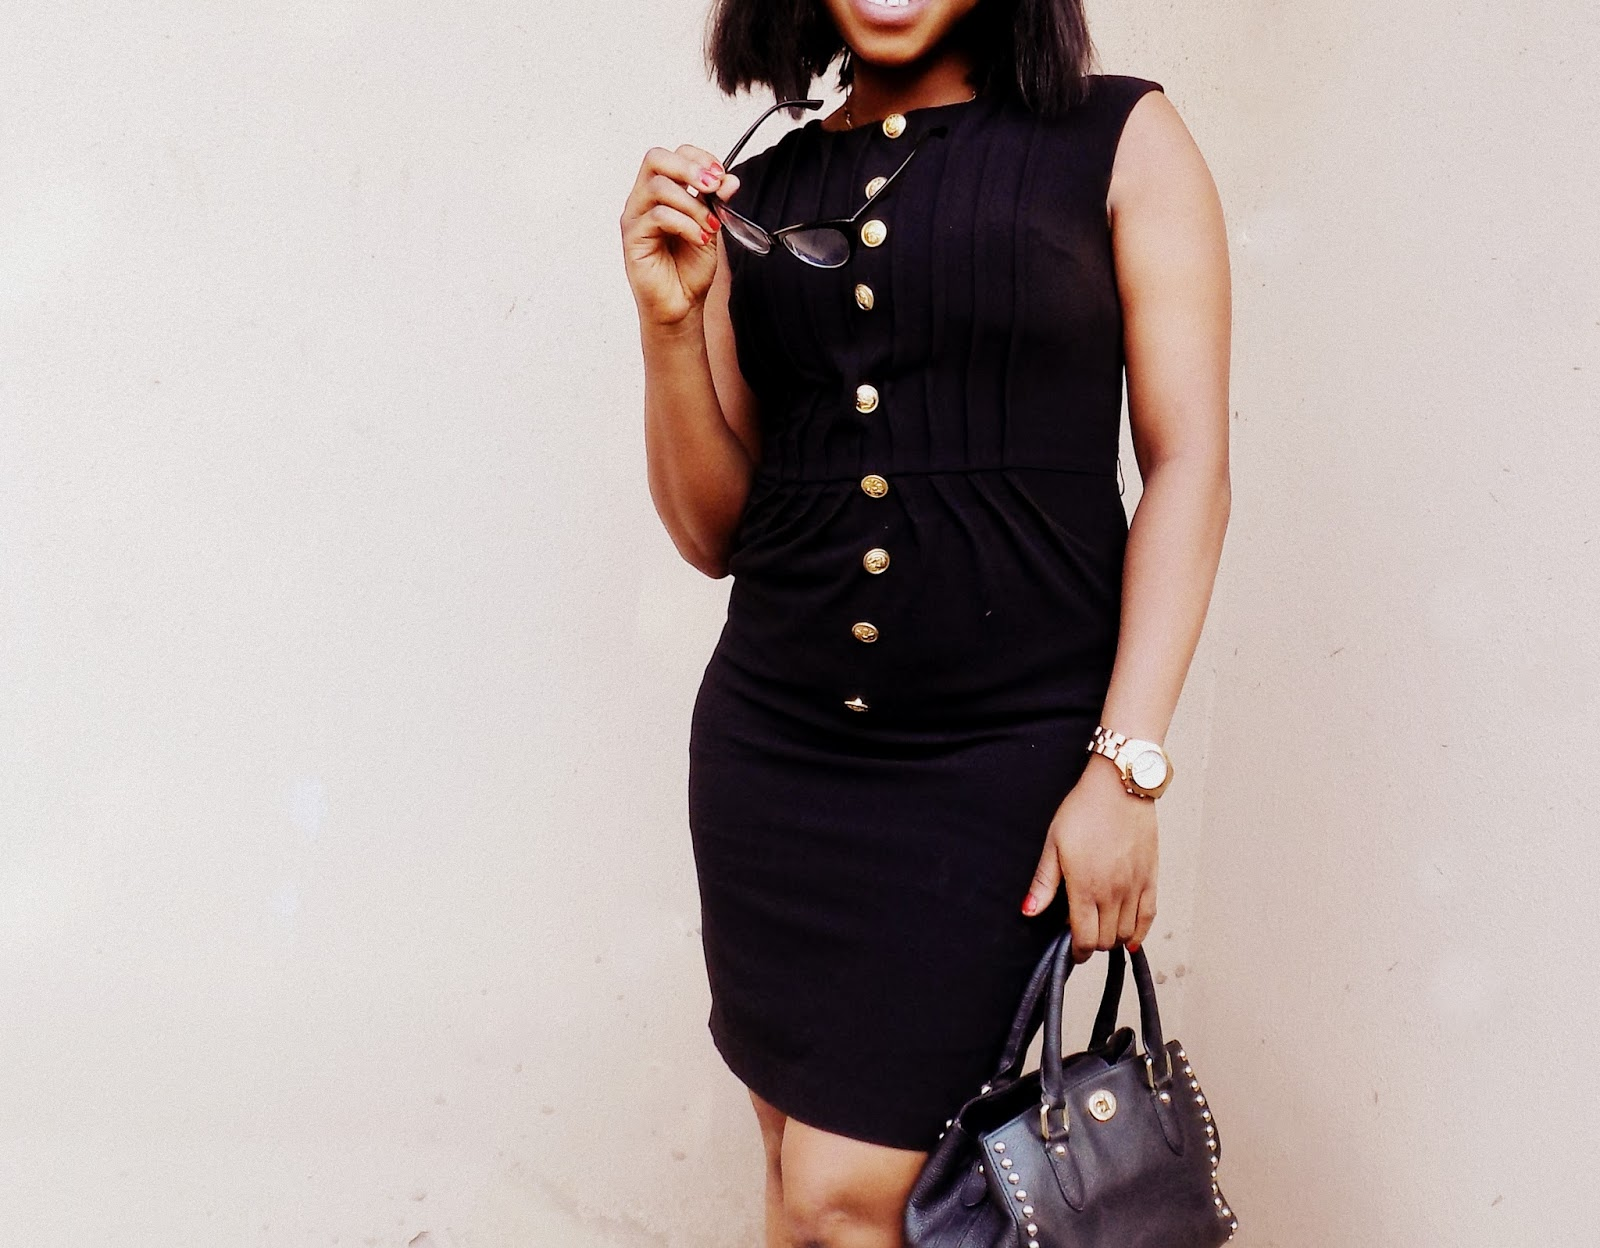 QUICK MILITARY INSPIRED DRESS DIY - Lagos City Chic by Mary Edoro